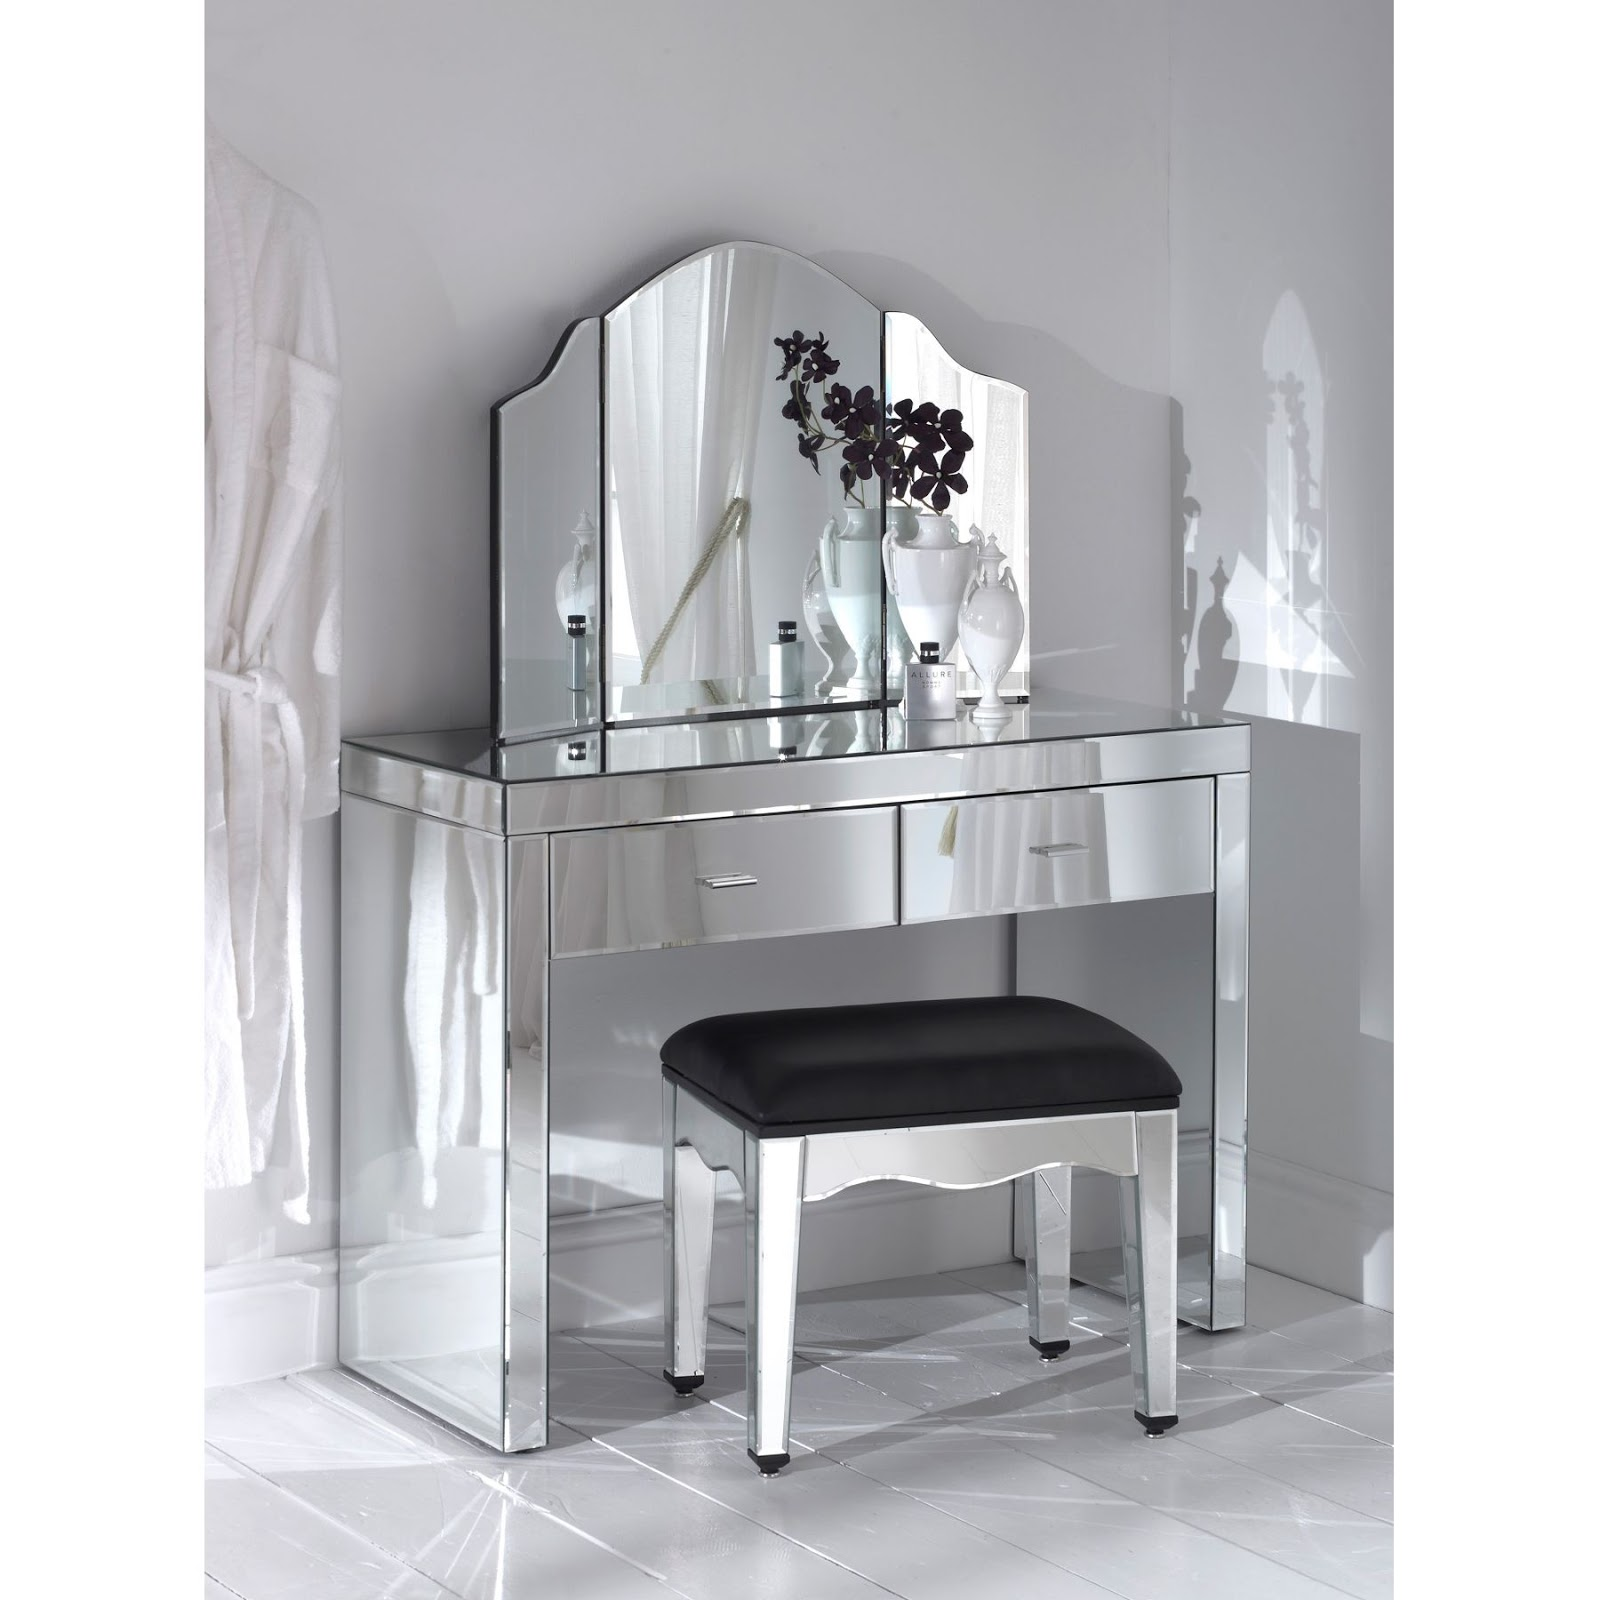 Best hayworth vanity mirrored vanity and ikea vanity also ikea rug hayworth rug ideas